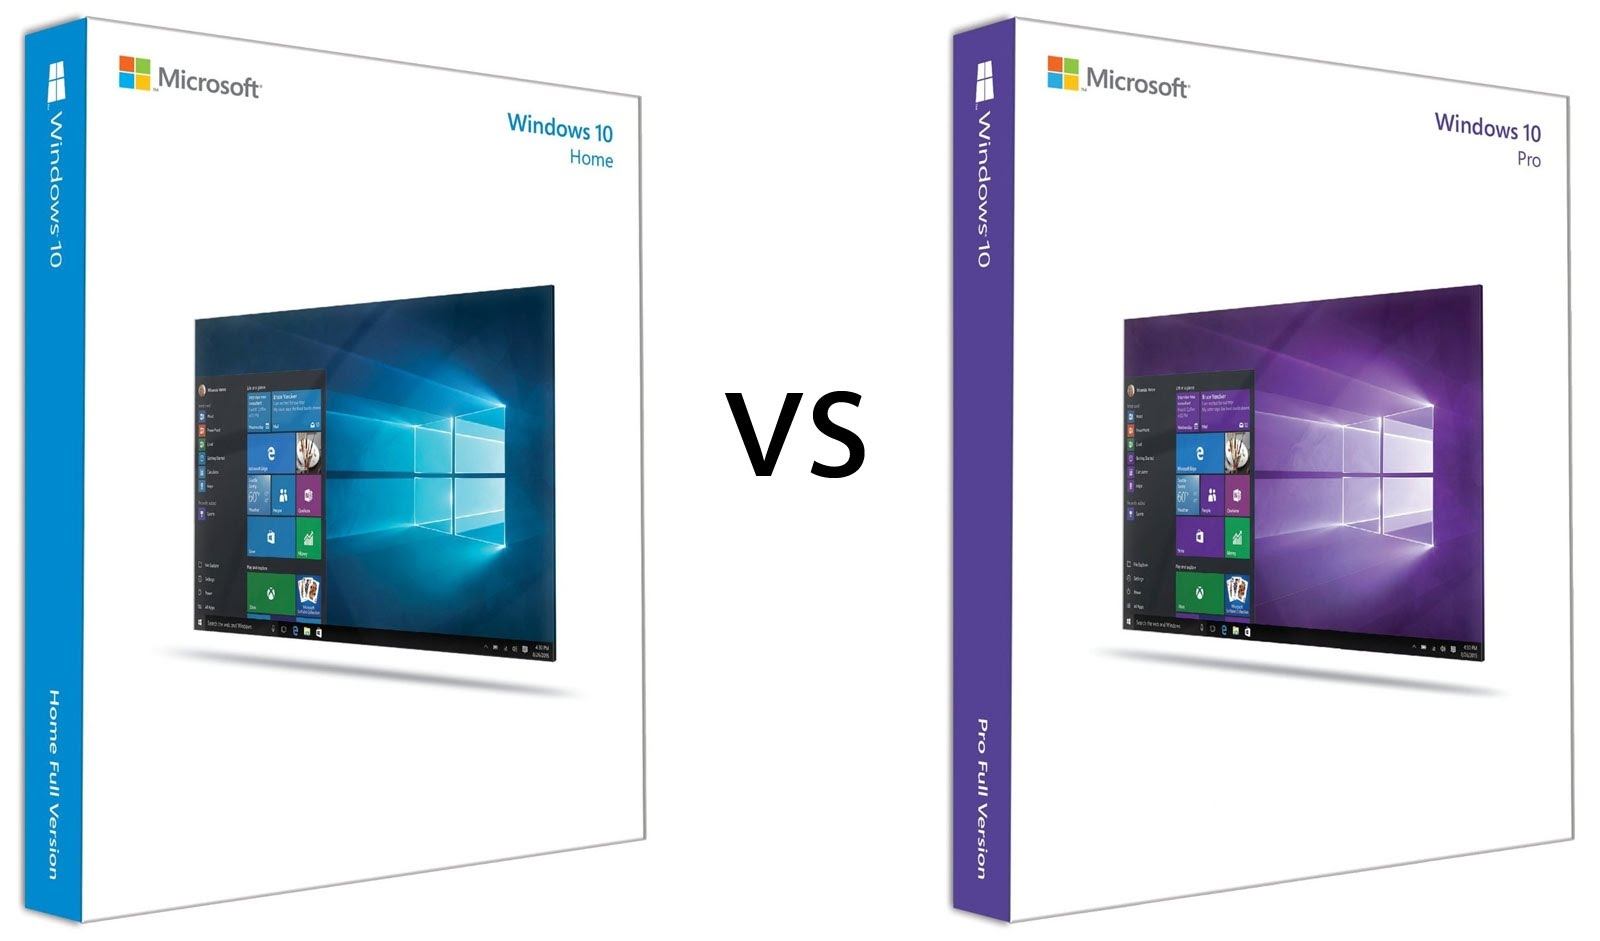 Windows 10 Home or Windows 10 Professional?